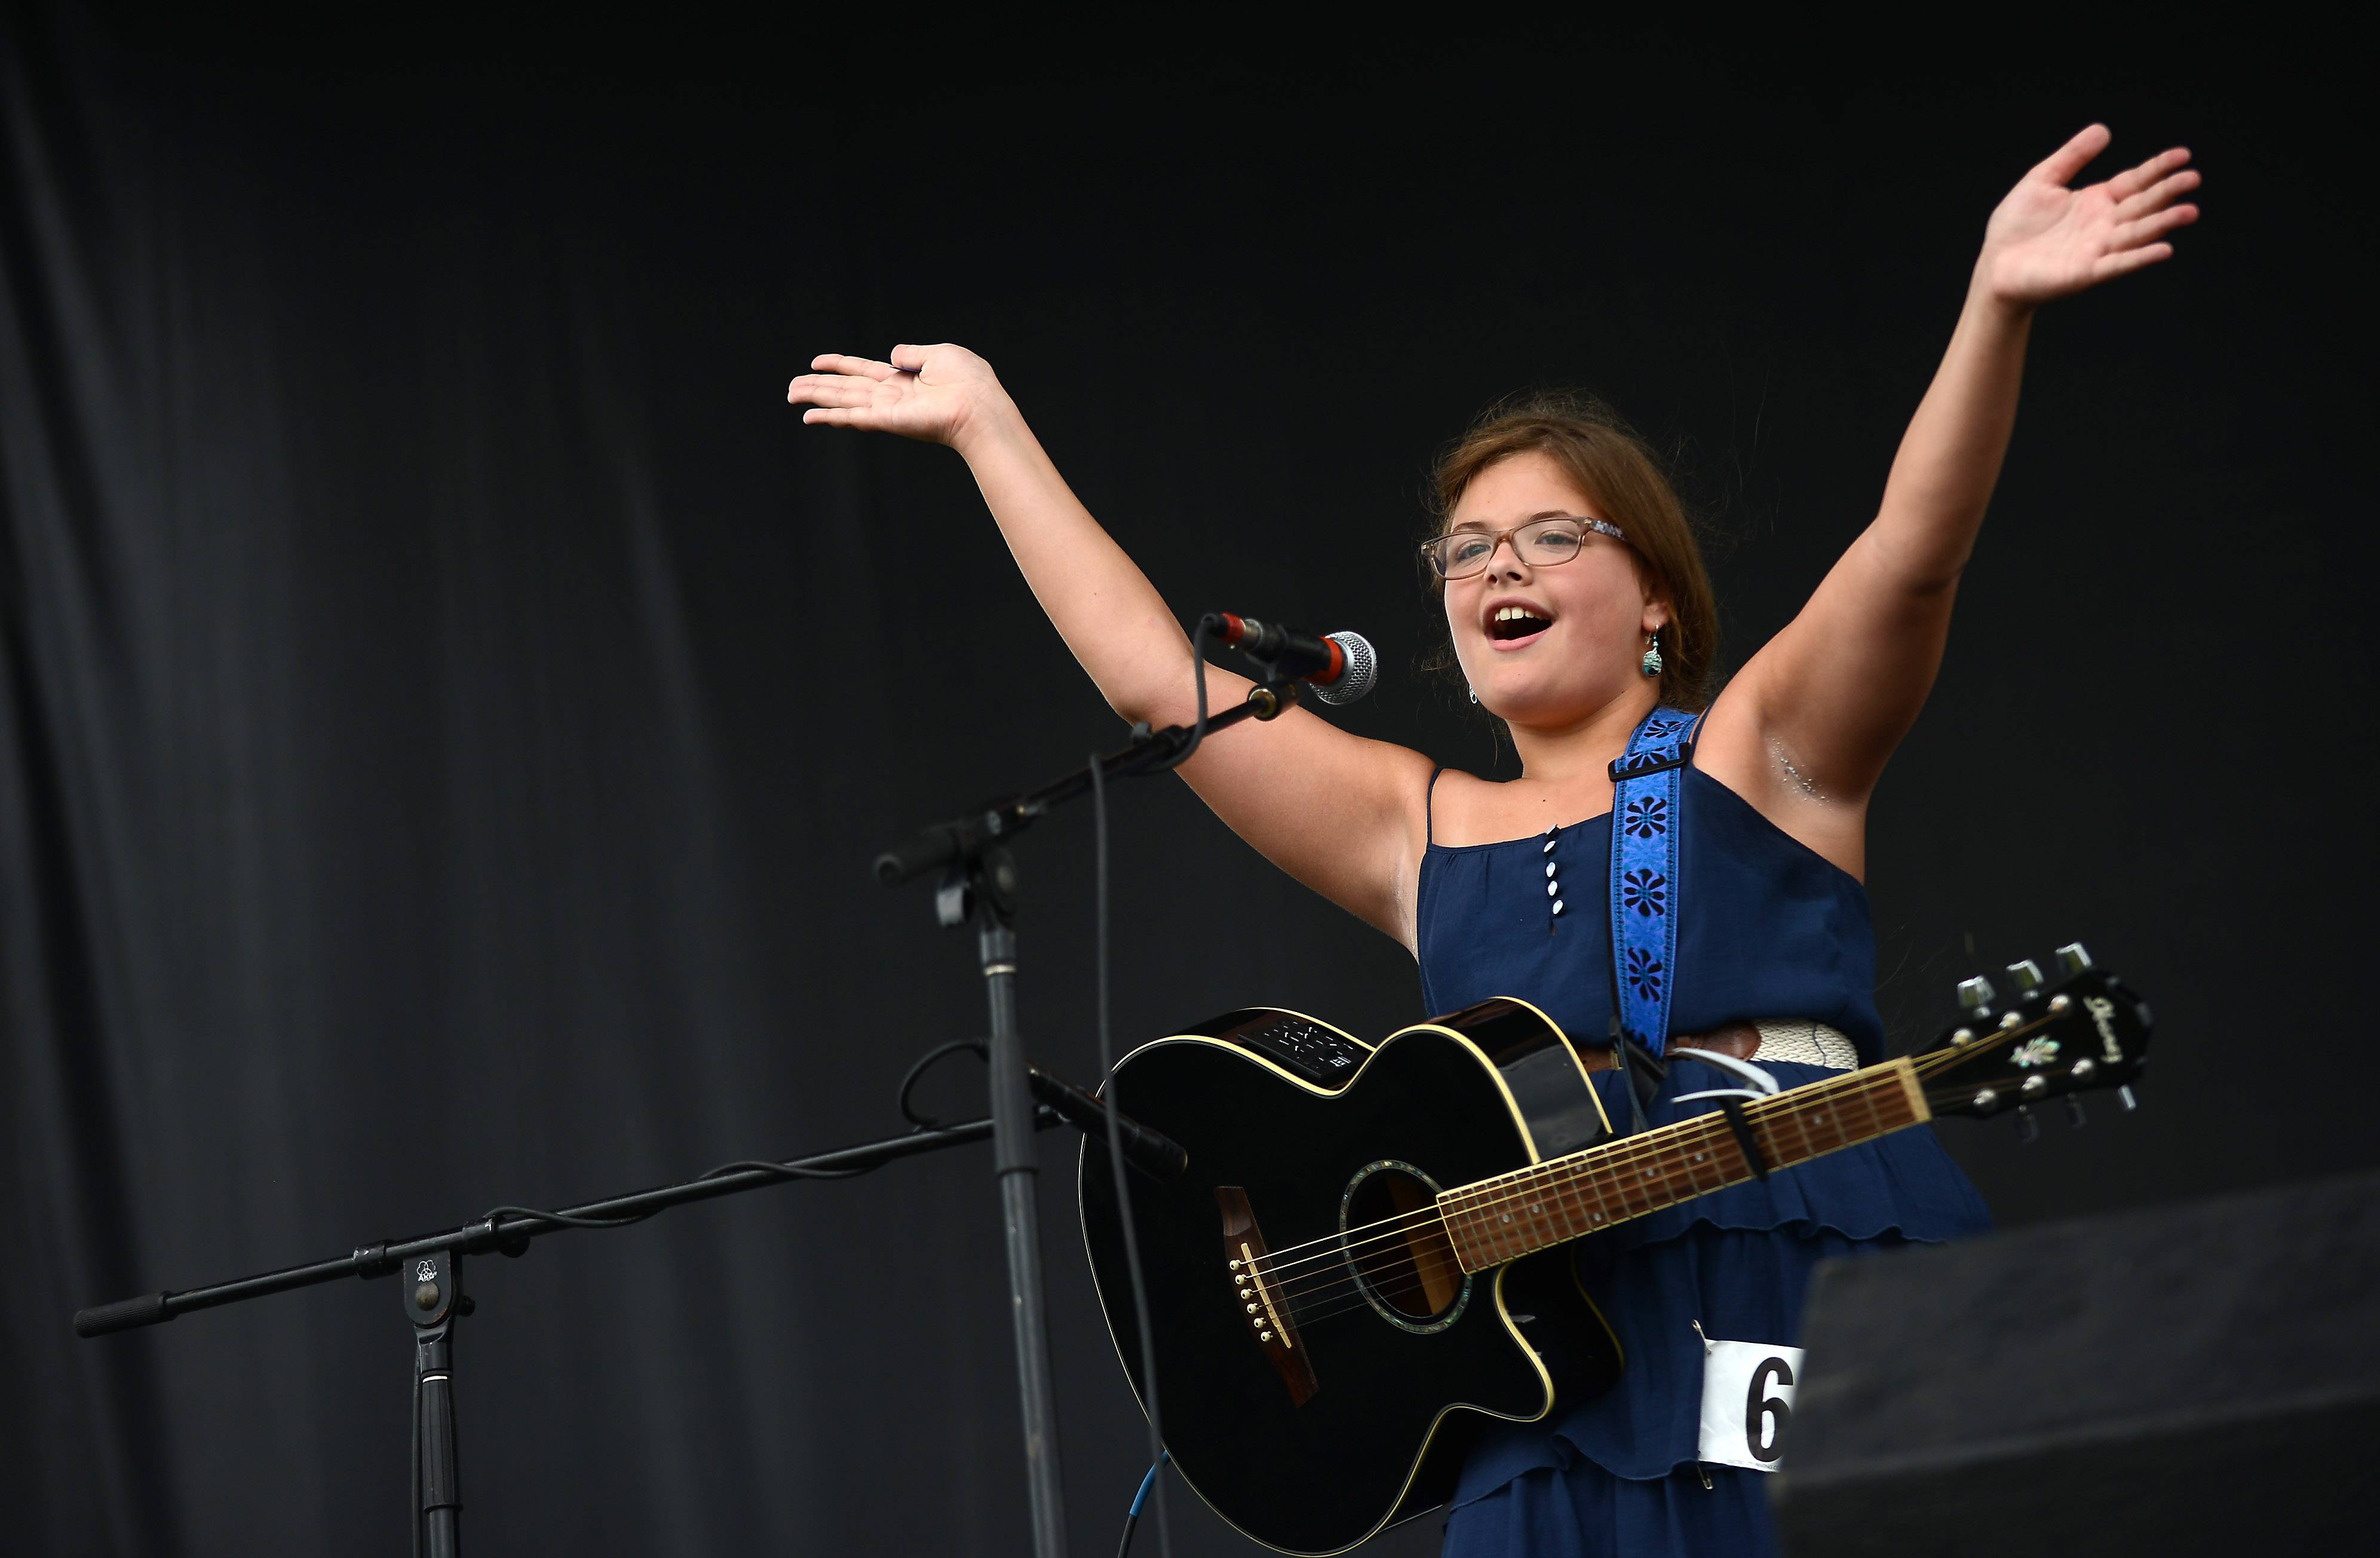 Livia LaMarca, 10, of Pingree Grove gets the audience to clap along as she performs in the talent contest during last year's Lake in the Hills Summer Sunset Festival.